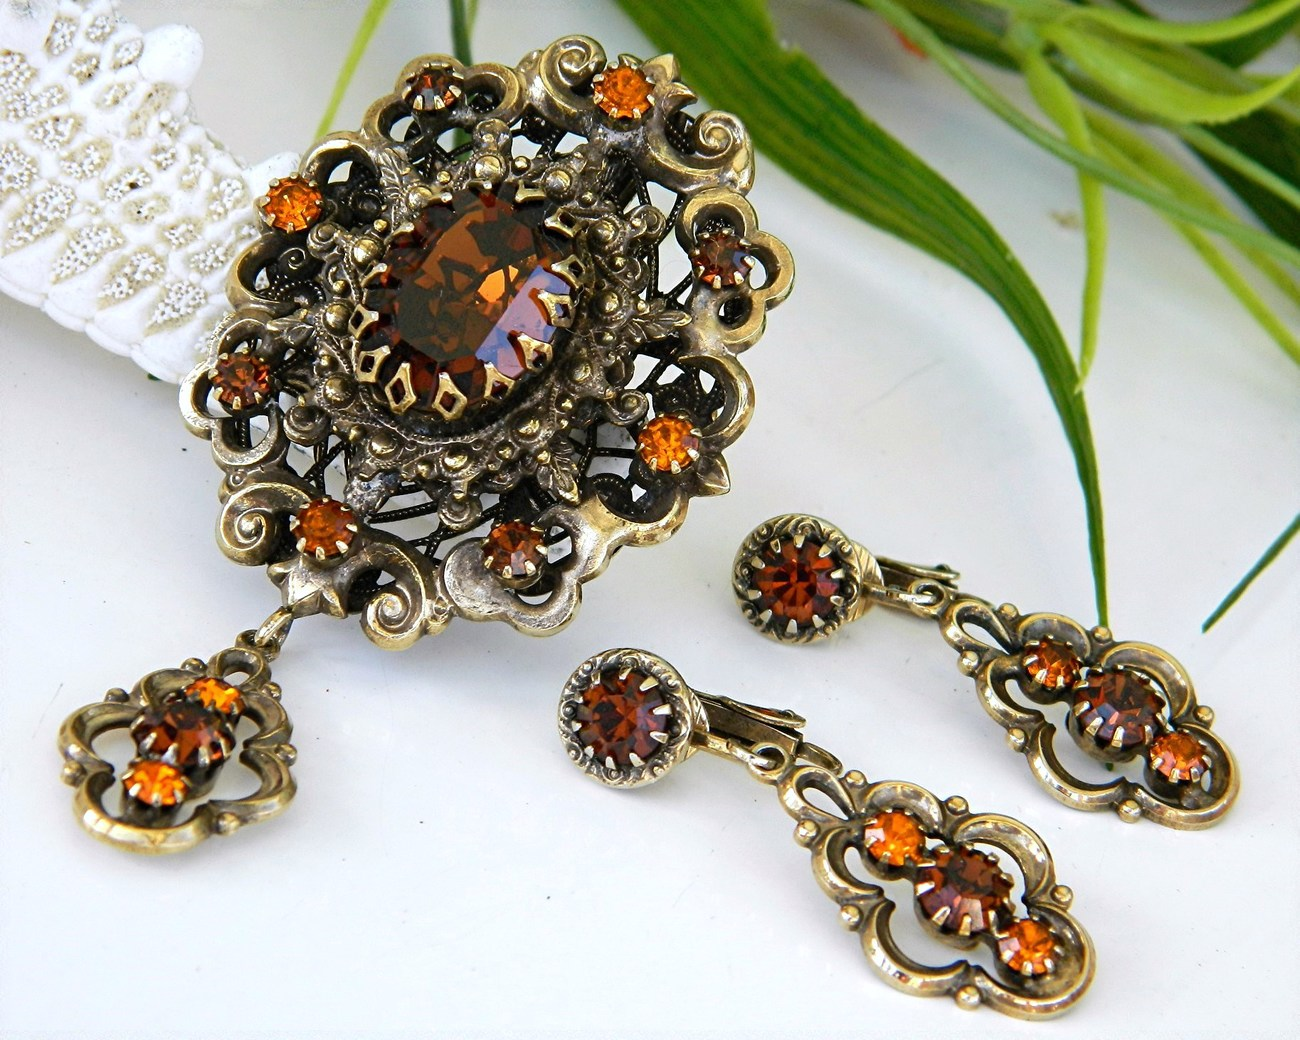 Vintage Hobe Brooch Pendant Earrings Demi Parure Amber Rhinestones